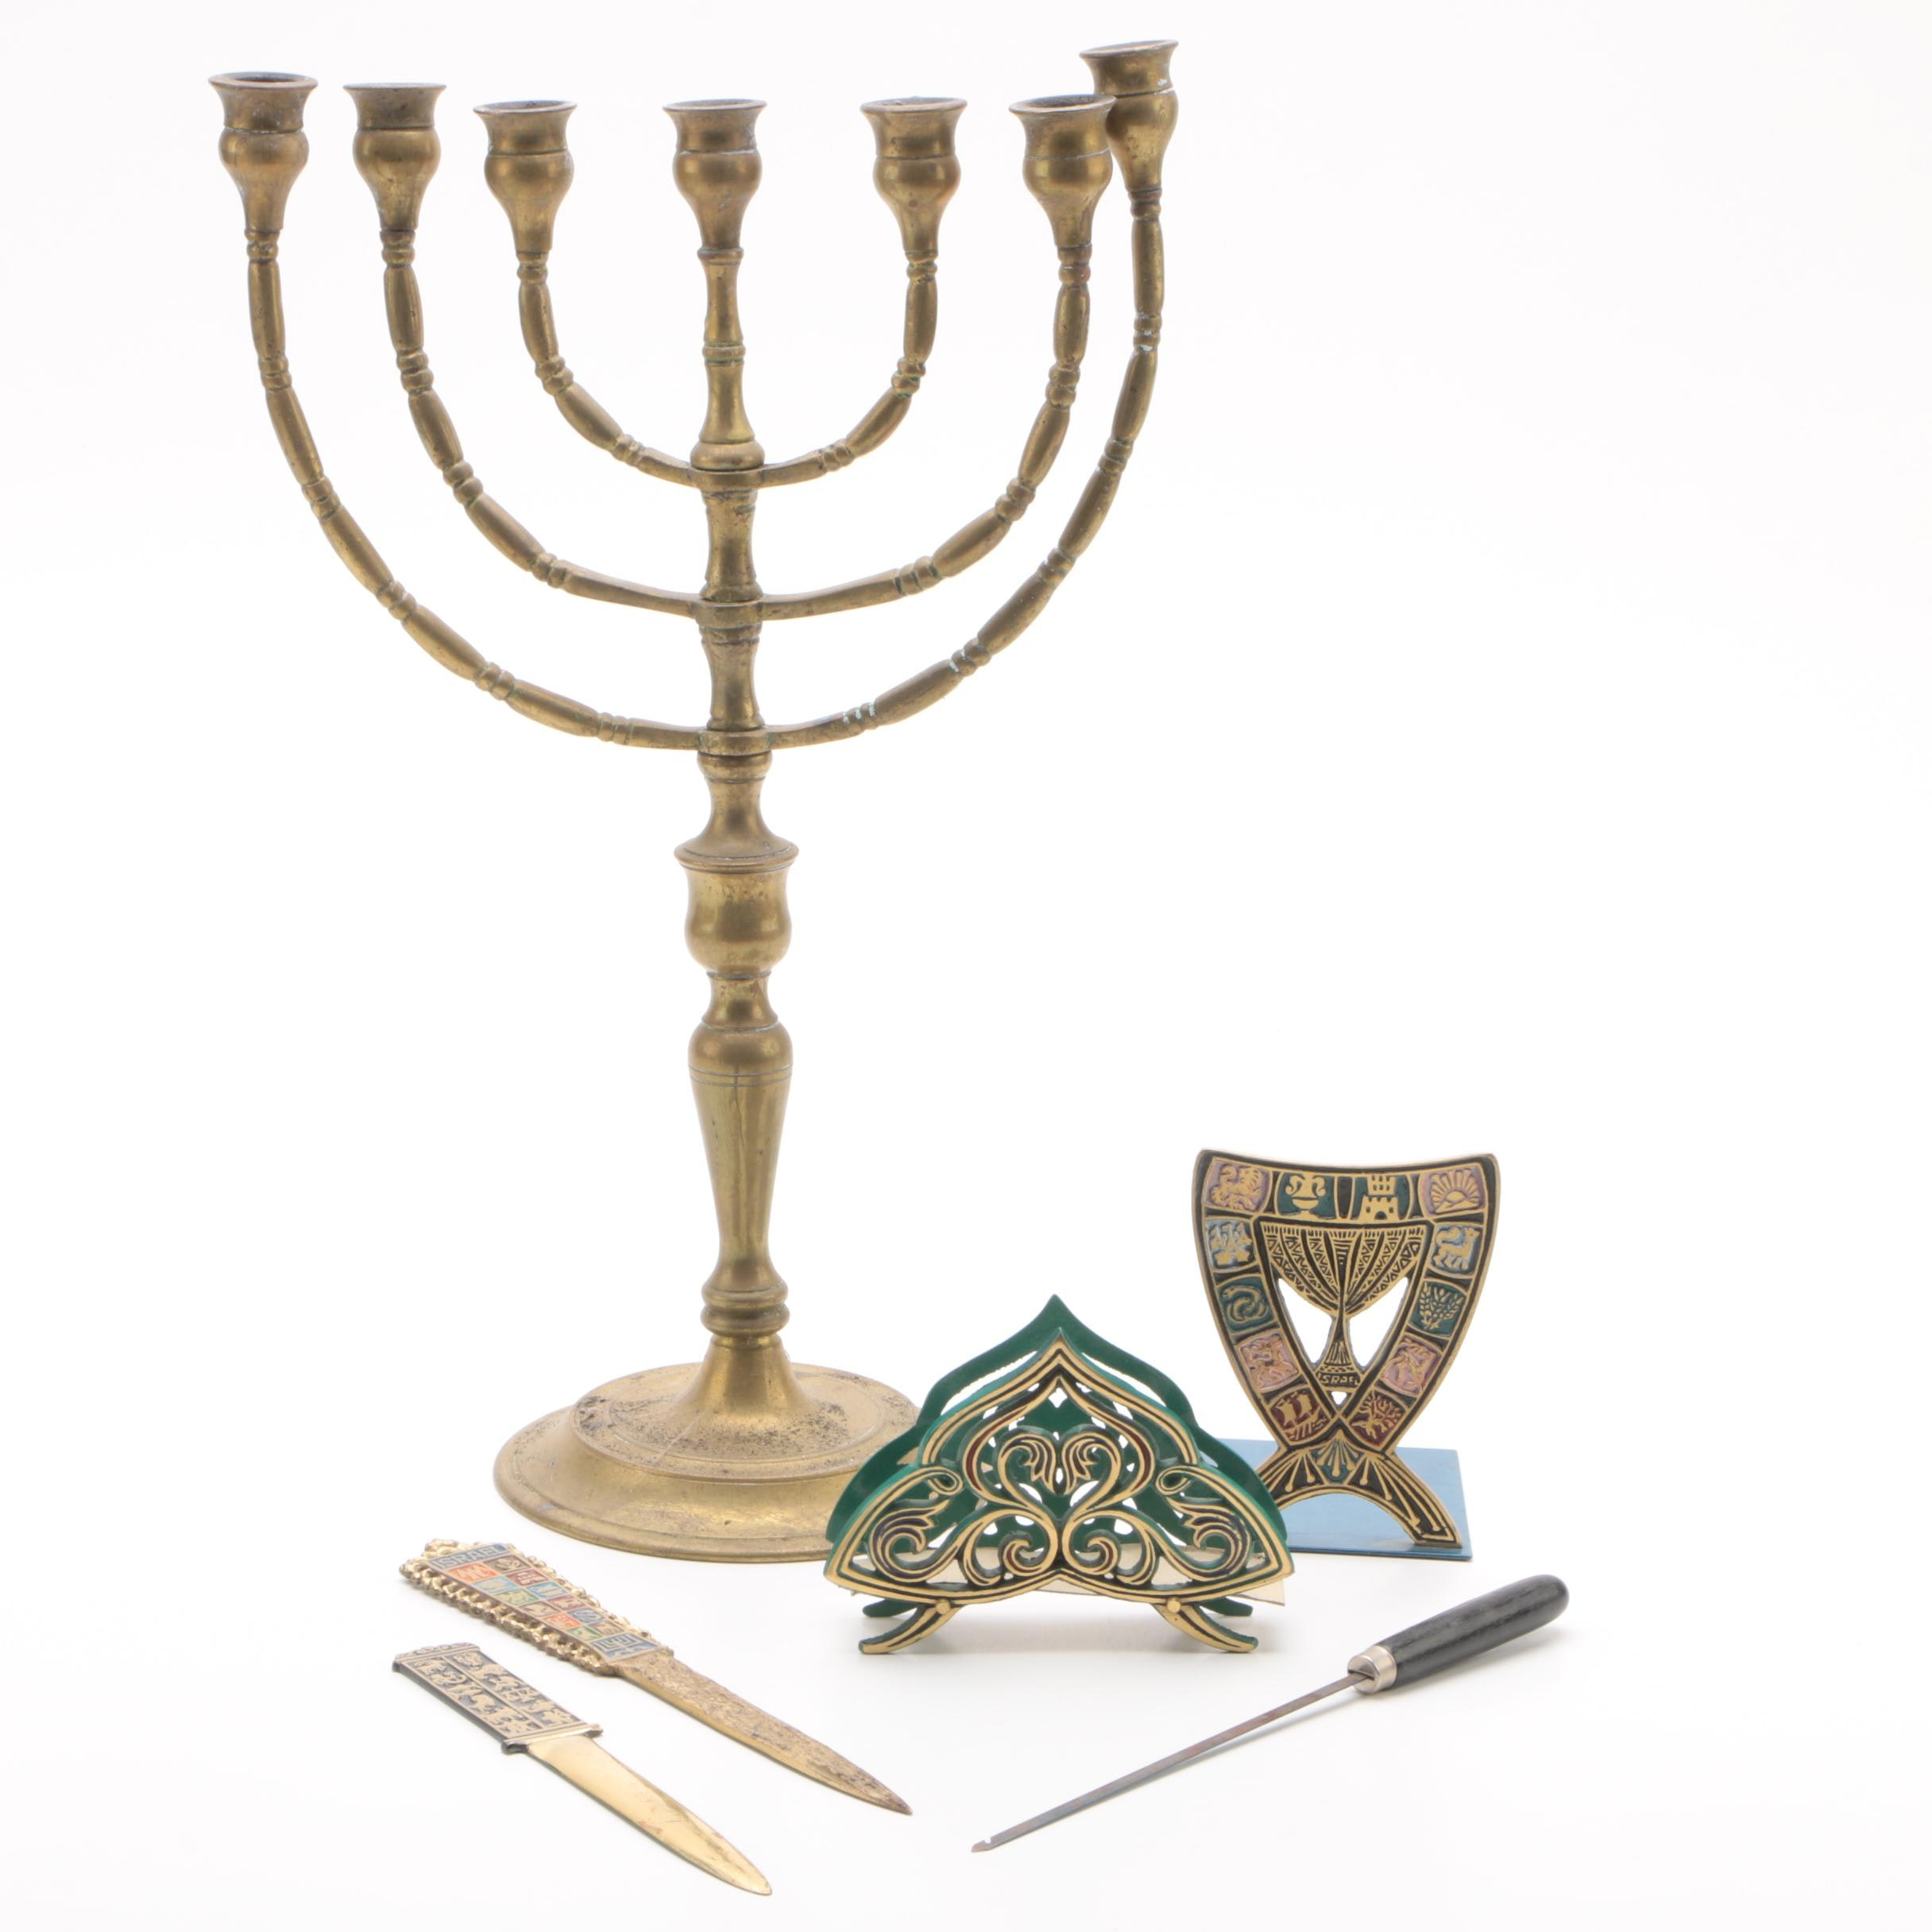 Brass Menorah with Other Judaica and Décor